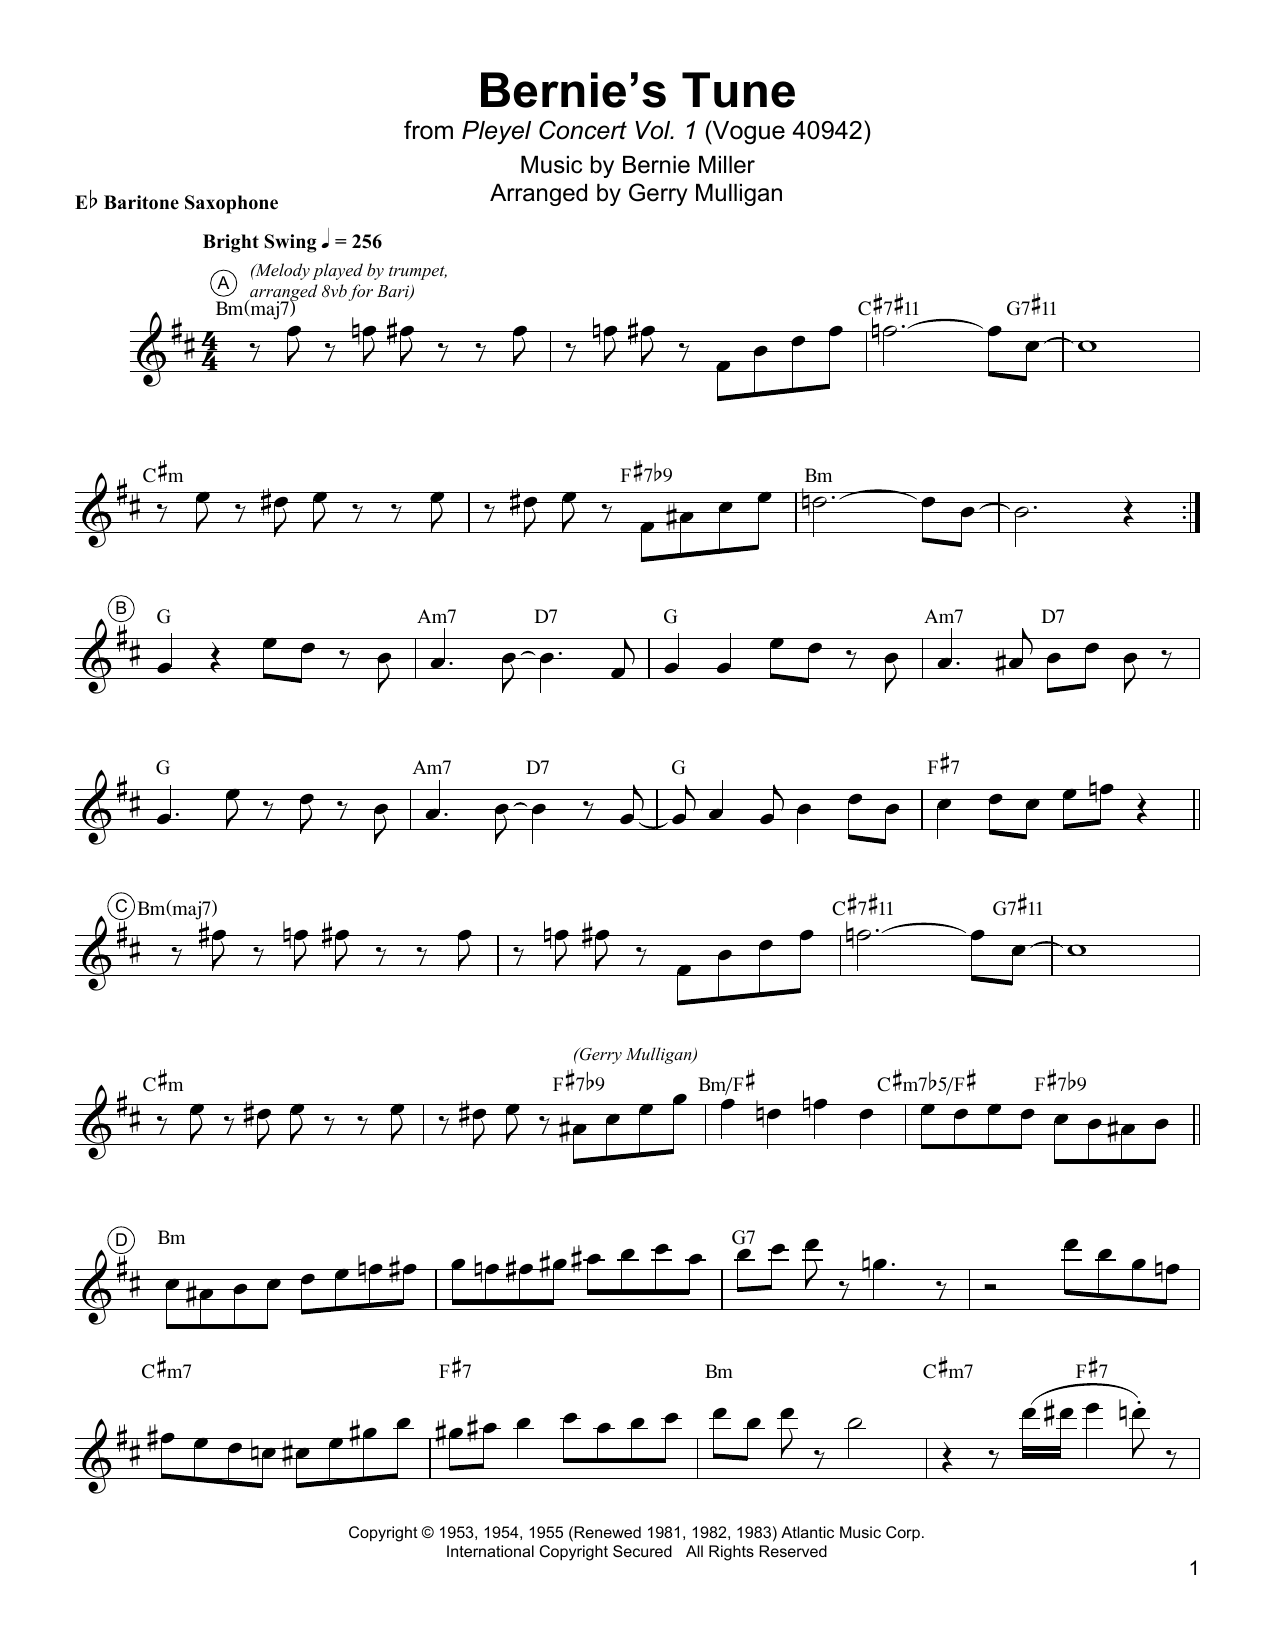 Bernie's Tune Sheet Music